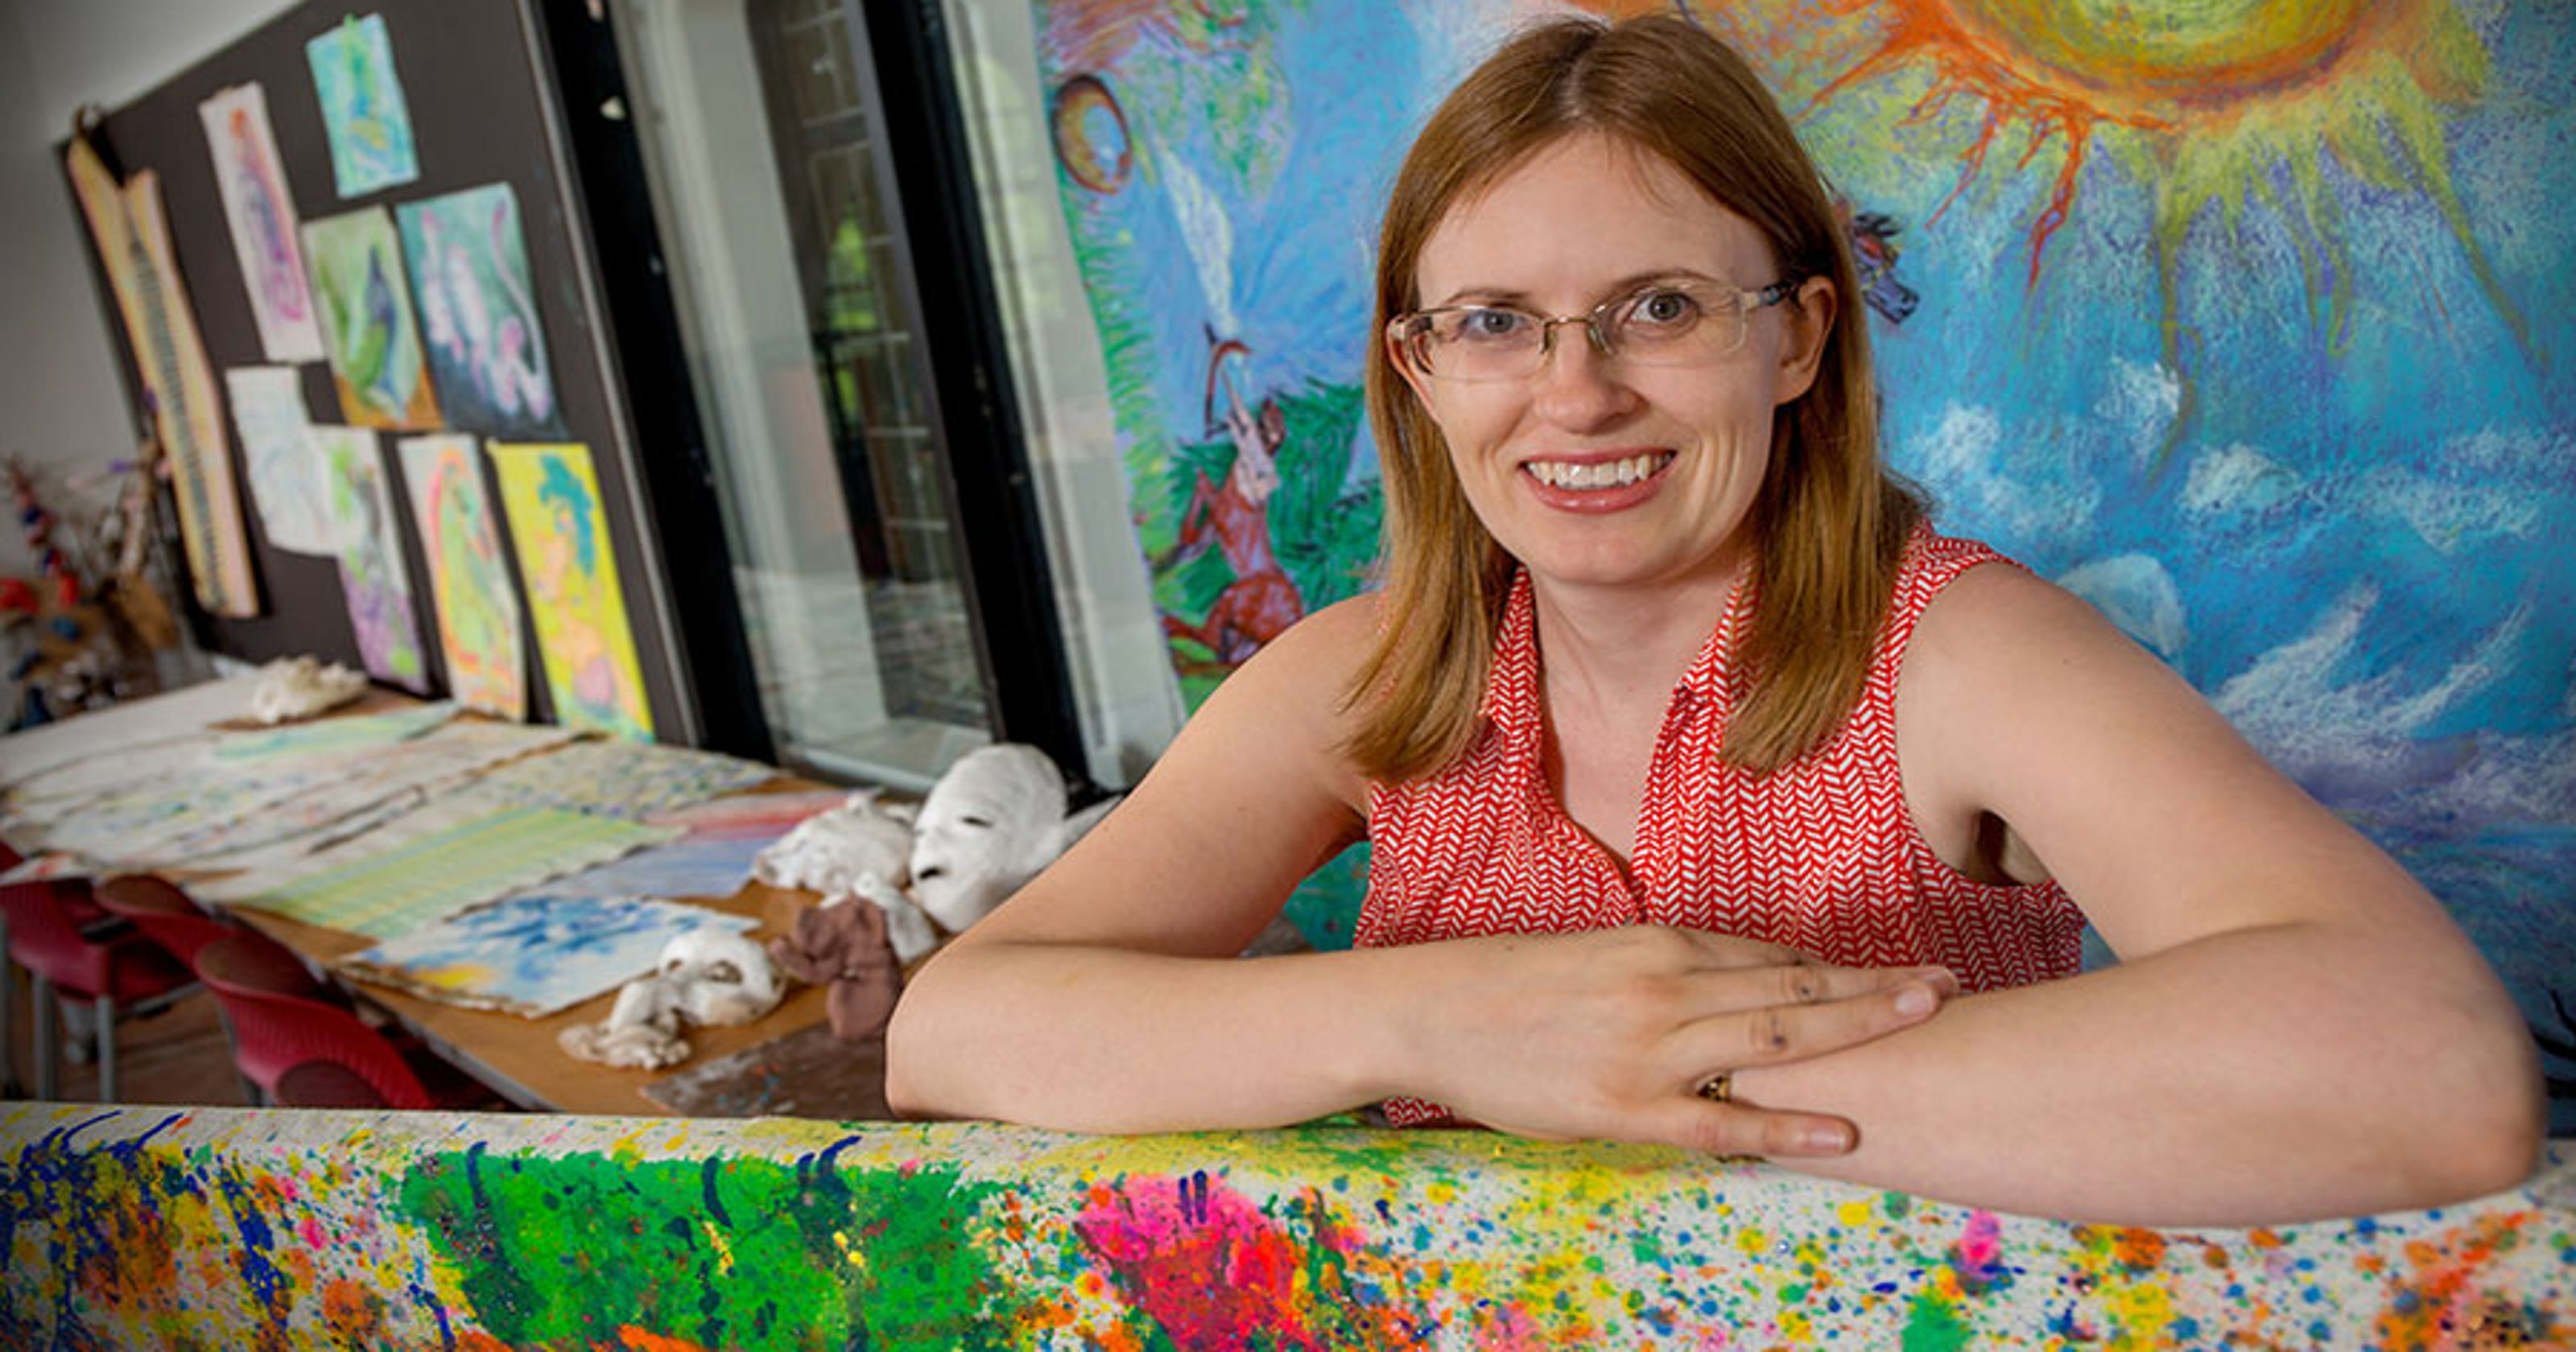 Researcher studies art therapy as model for autism treatment